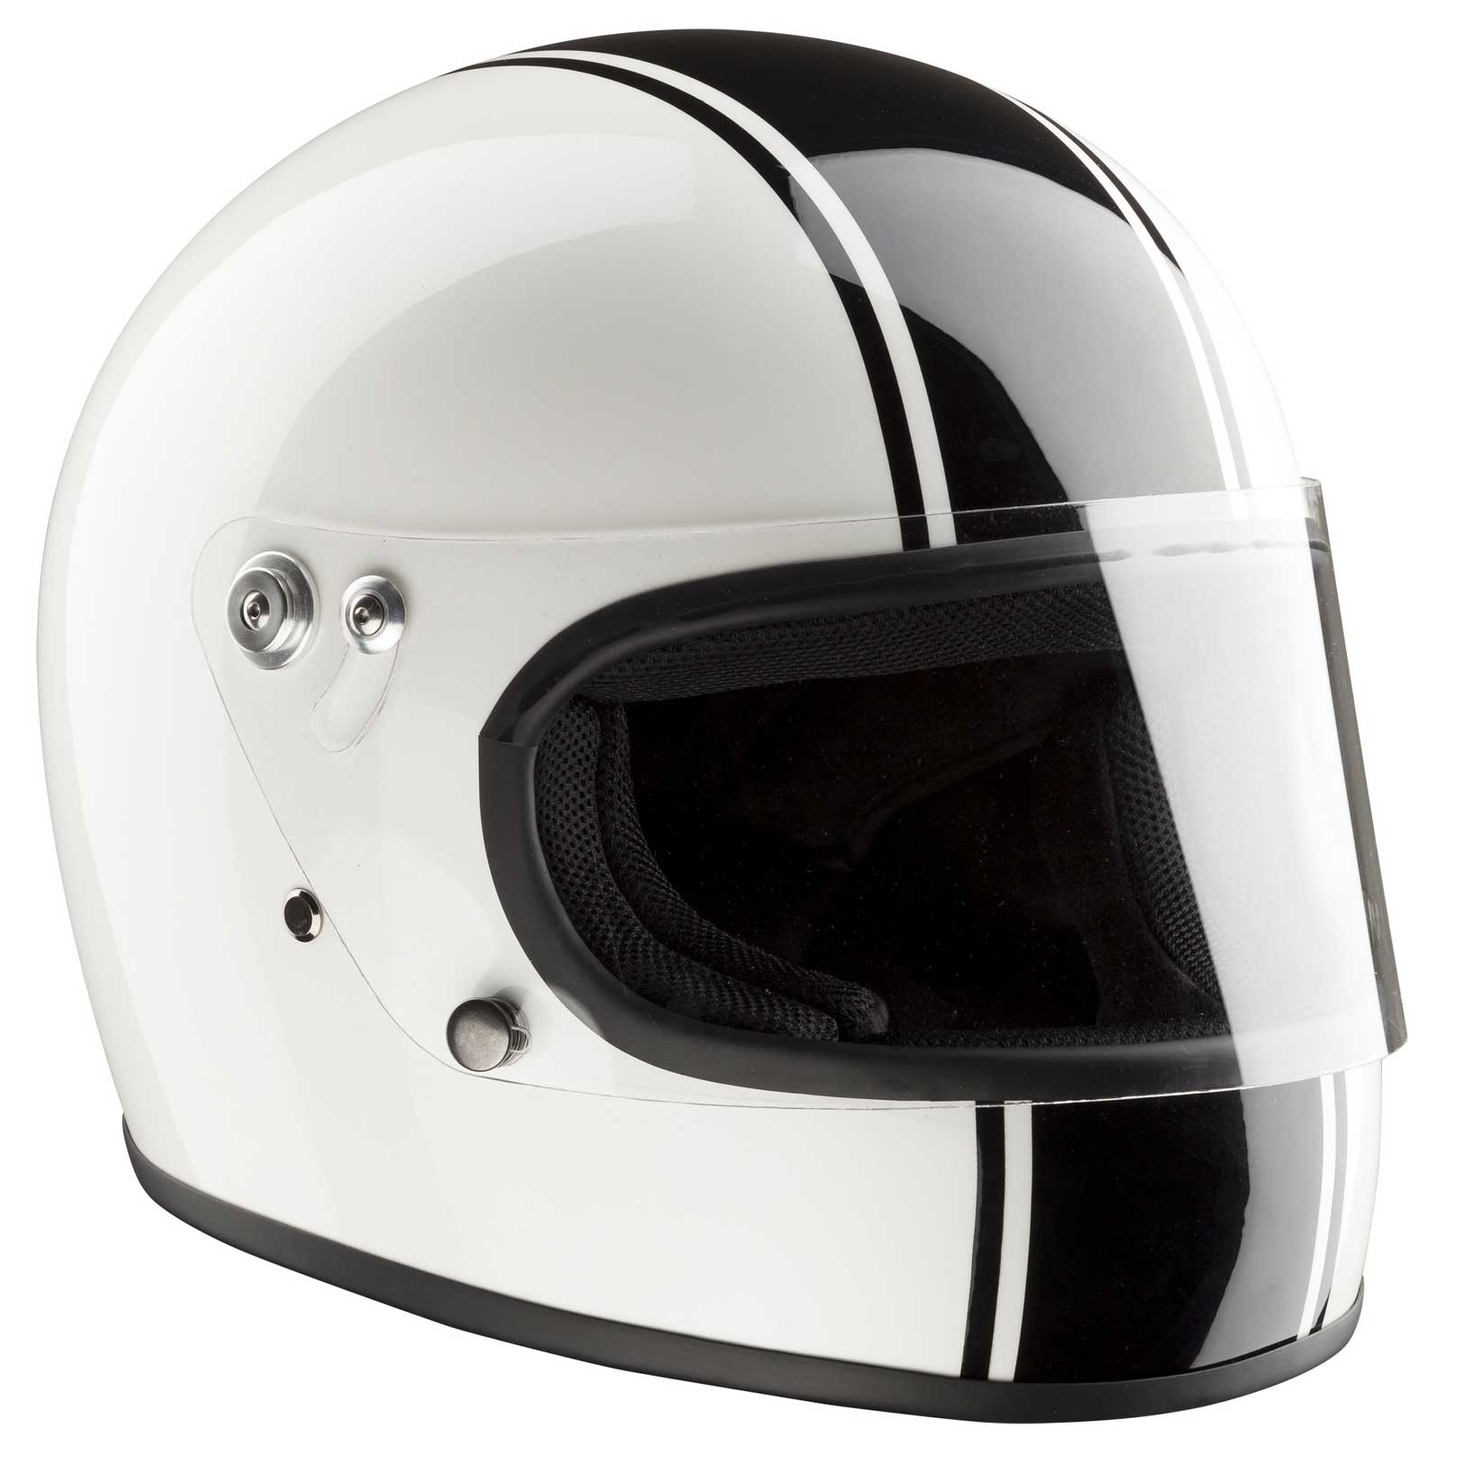 Bandit Integral ECE 22-05 homologated Retro Motorcycle Helmet – Picture 2